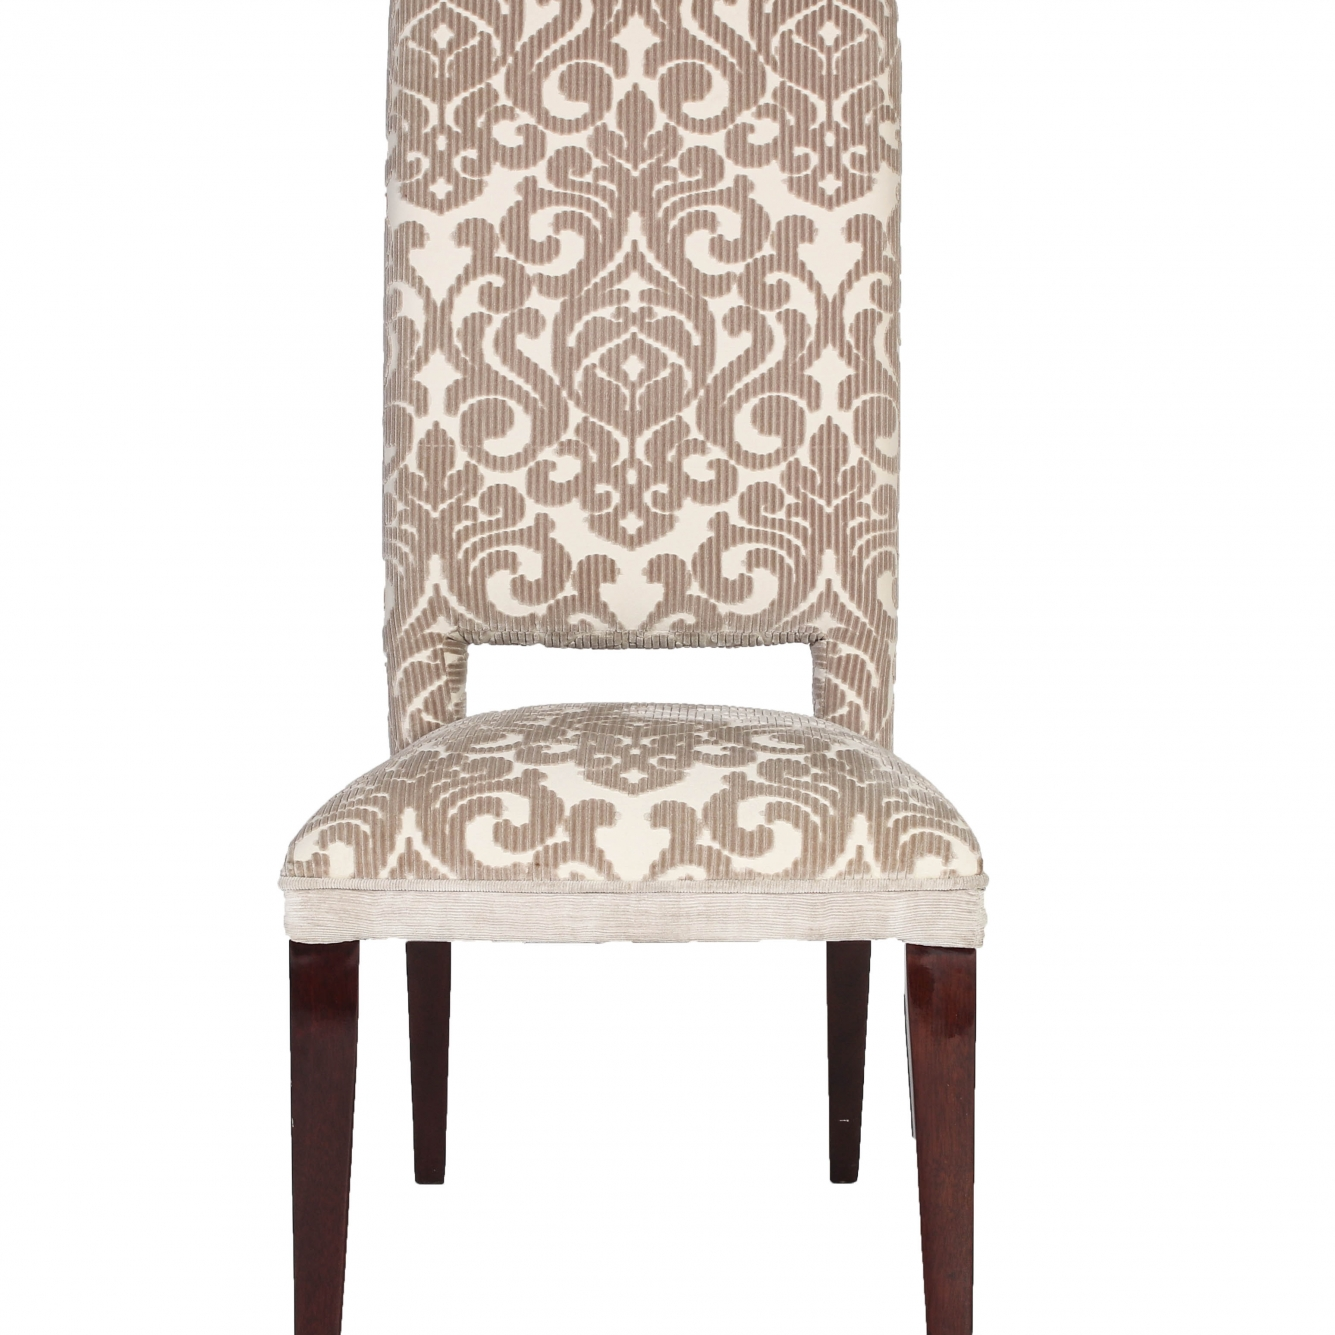 HOUSE HAVEN FURNITURE 28